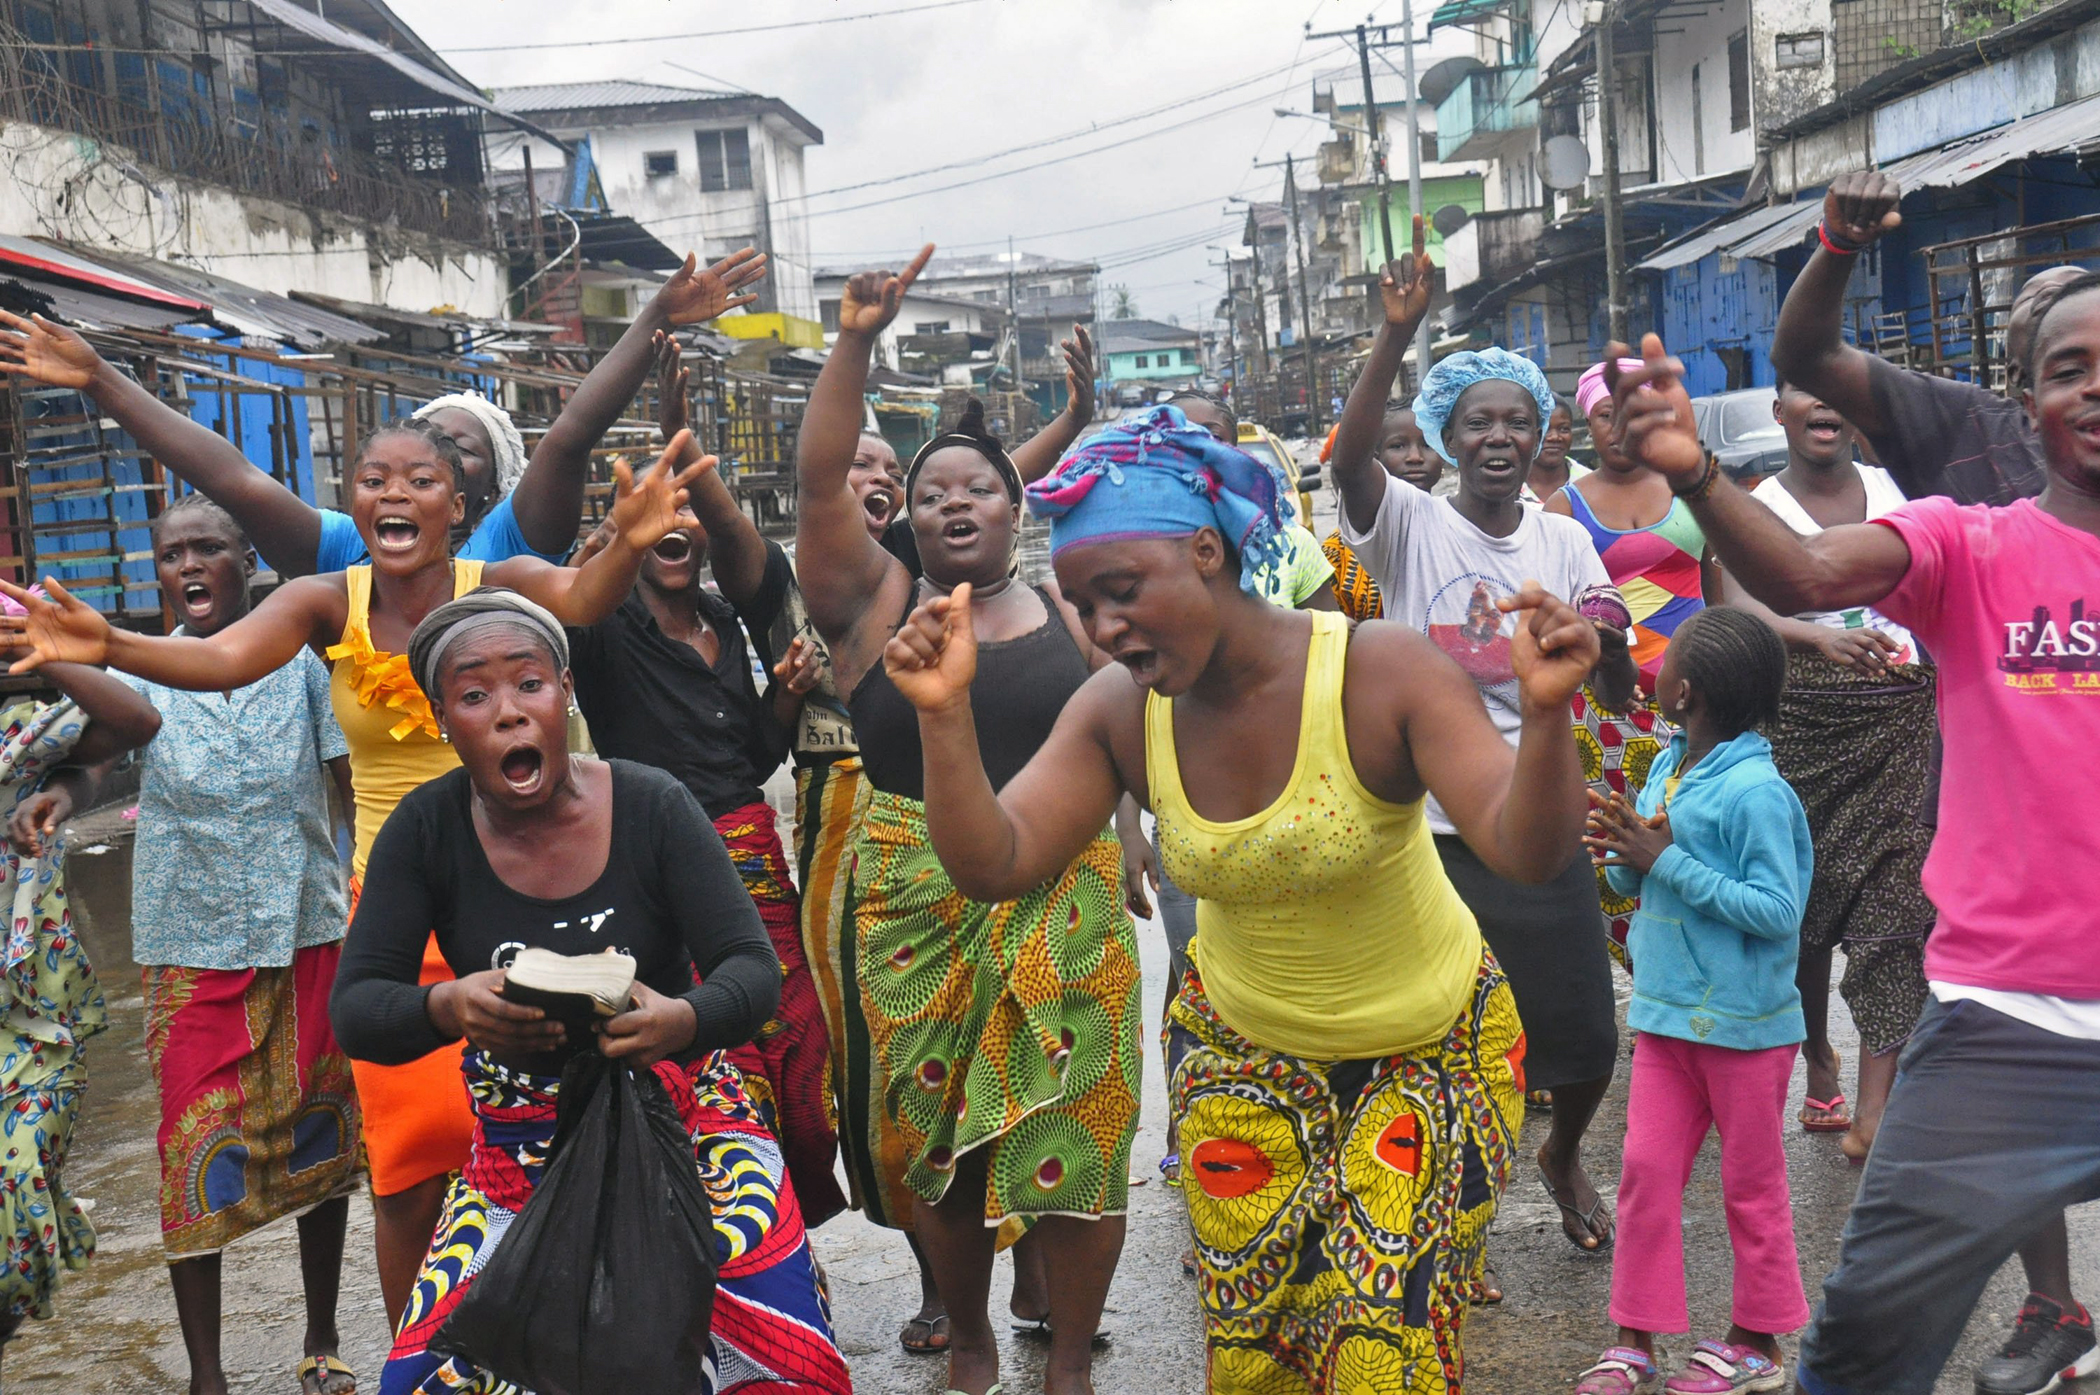 People celebrate in a street outside of West Point slum in Monrovia, Liberia, Aug. 30, 2014. Crowds cheer and celebrate in the streets after Liberian authorities reopened a slum where tens of thousands of people were barricaded amid the countryís Ebola outbreak.